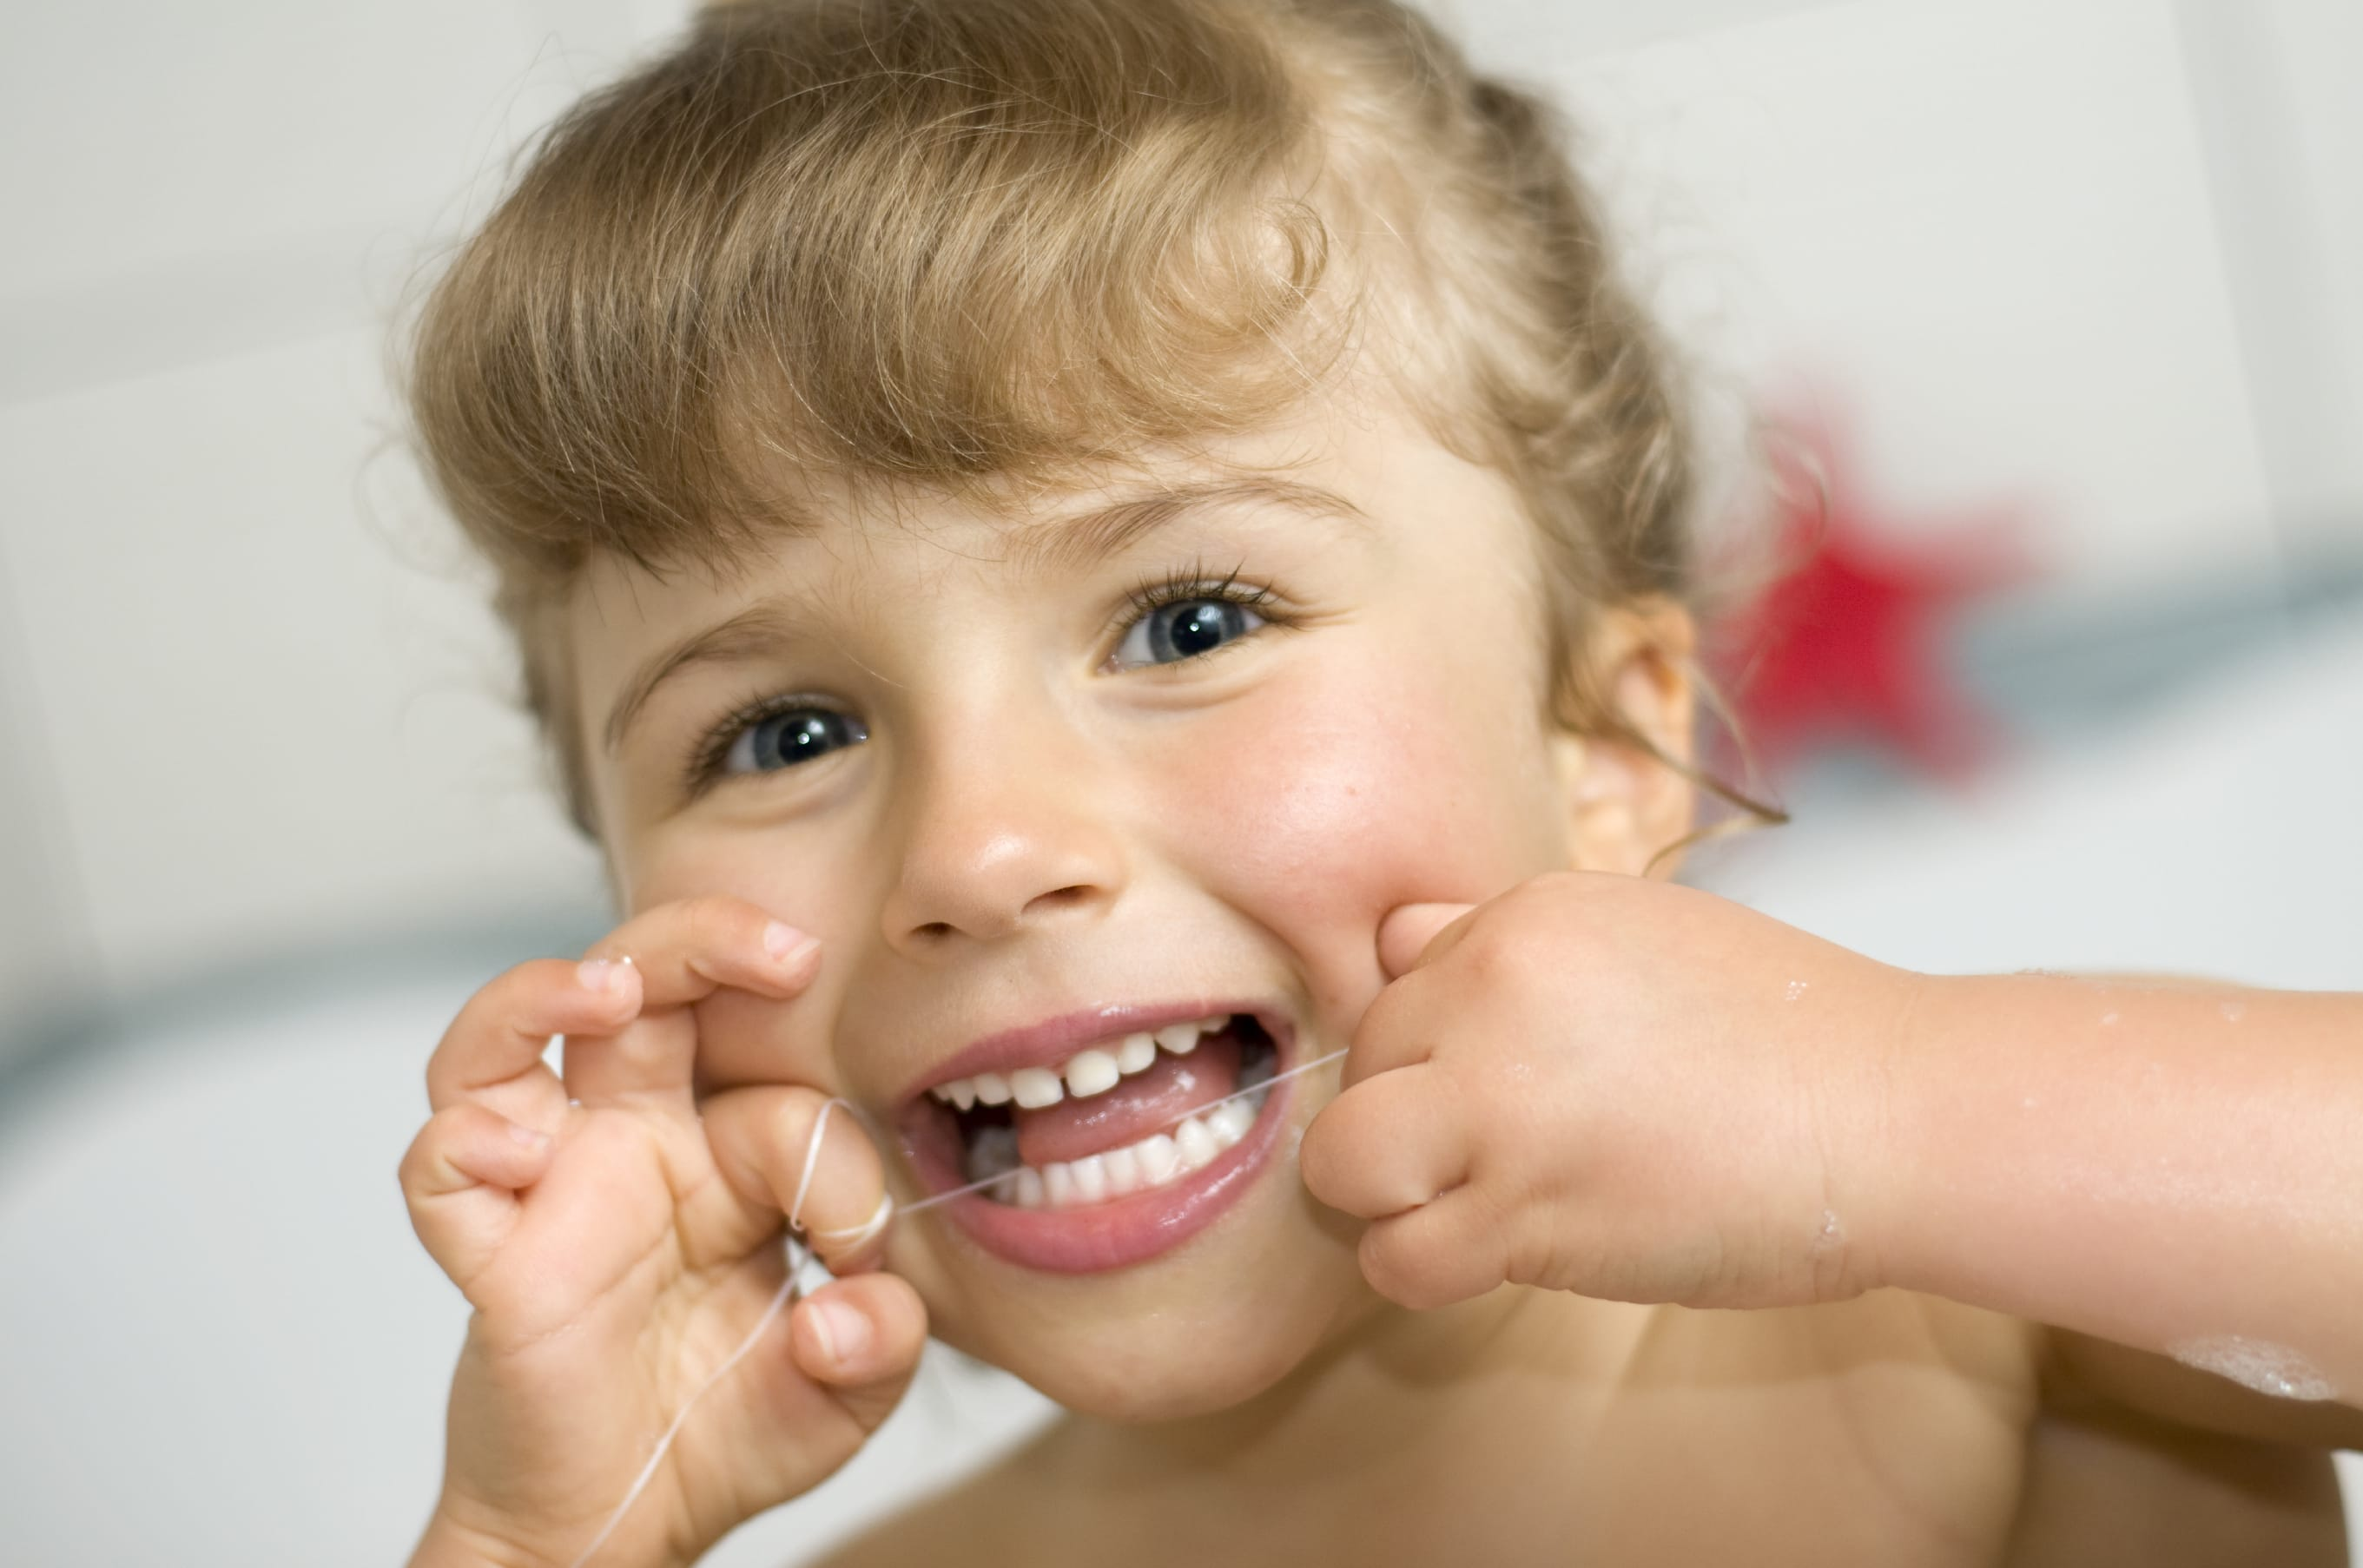 Don't overlook important oral health habits for young children